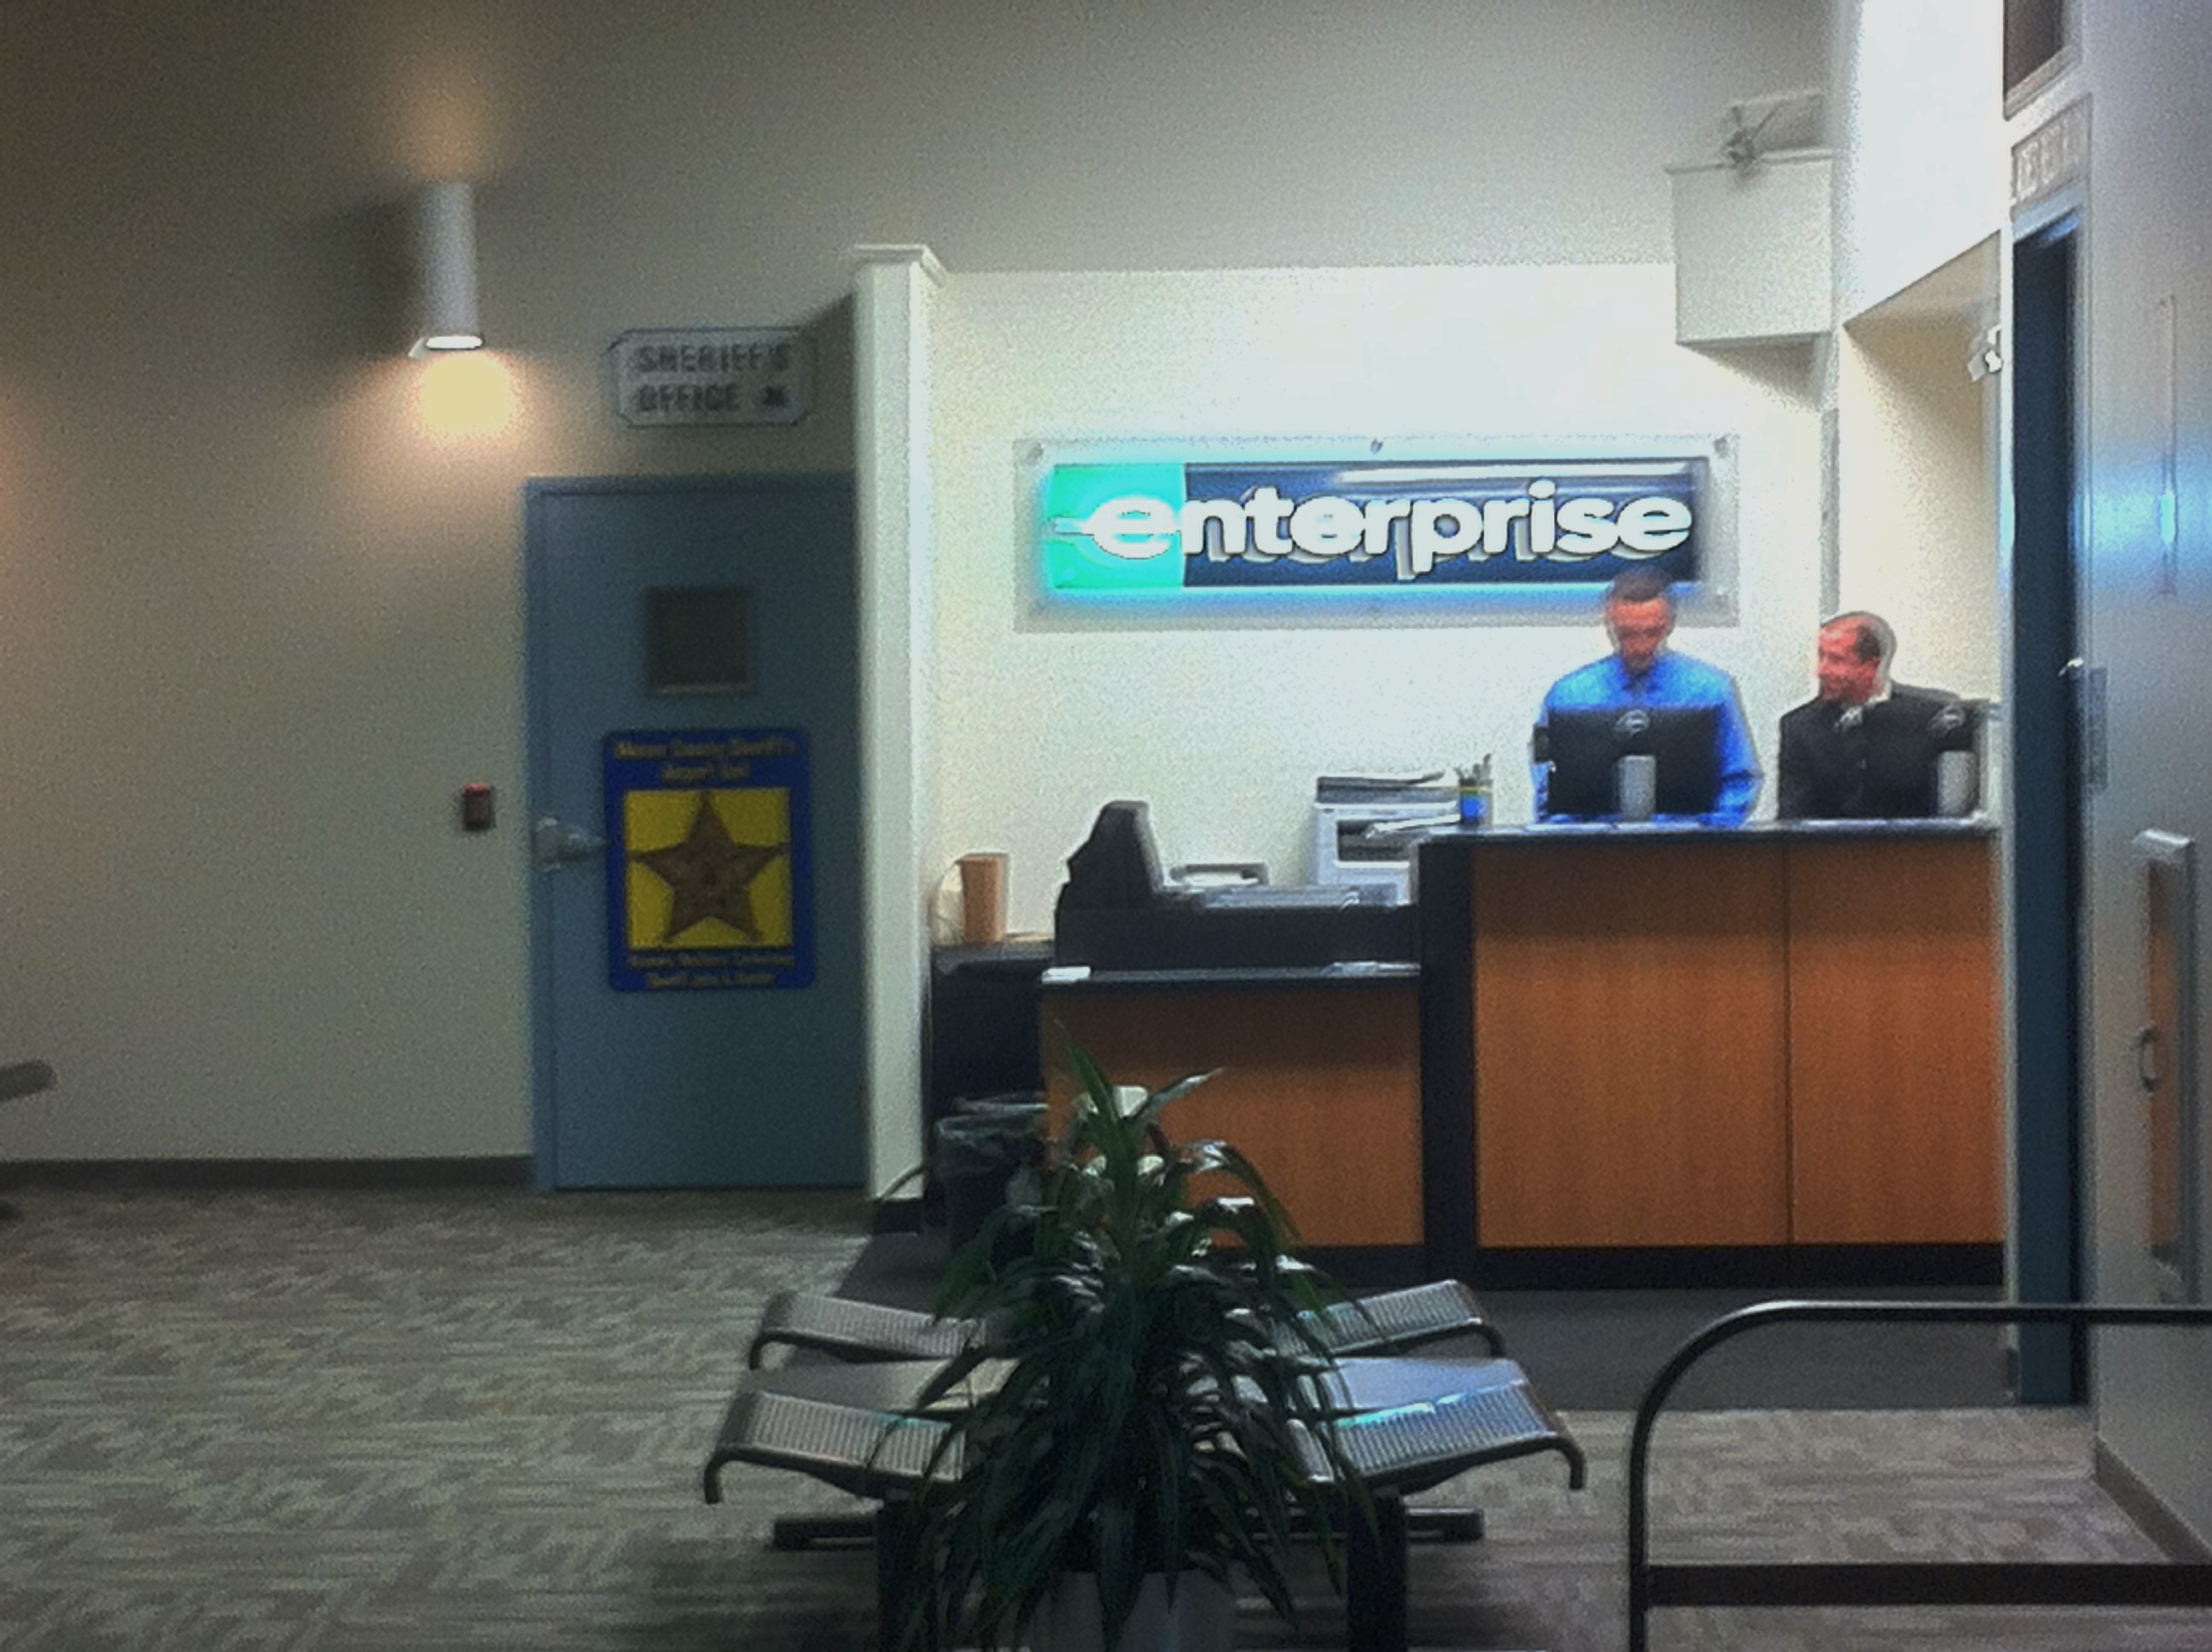 Enterprise Rental Car Offcie